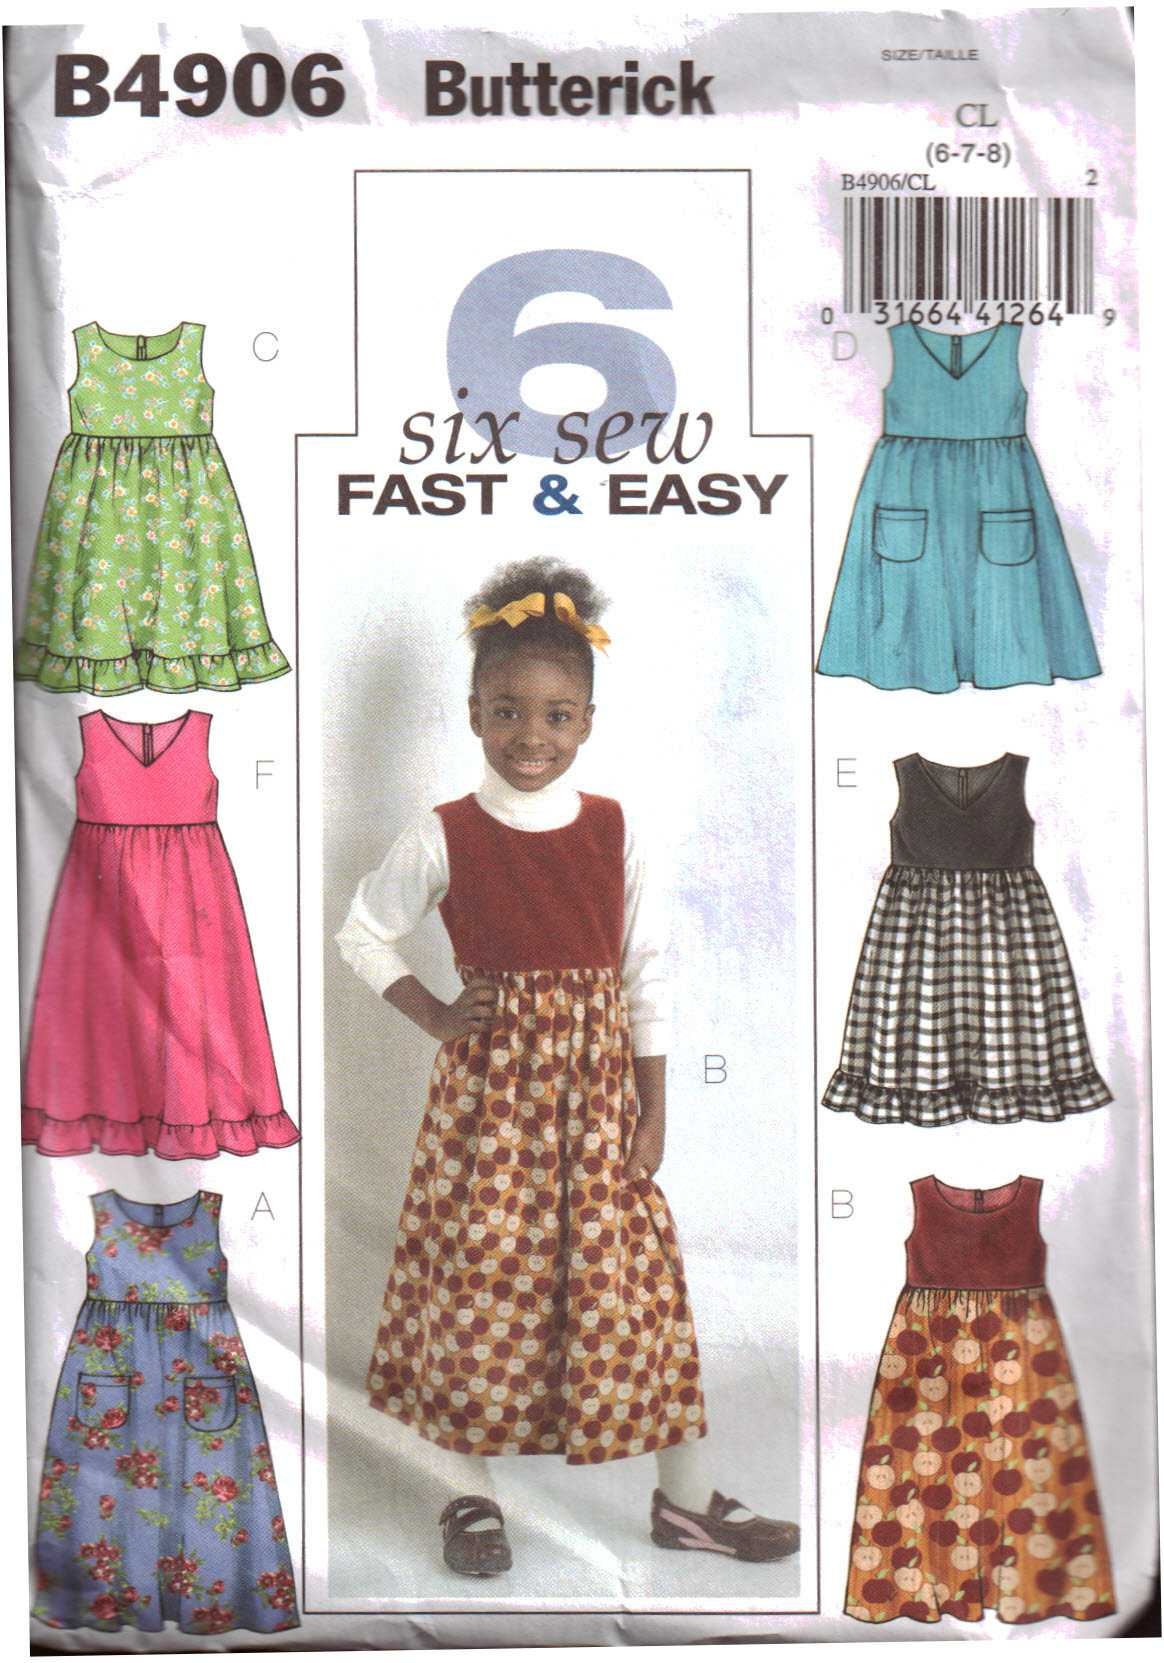 cd1a09648a84 Butterick B4906 Girls Jumper Size: CL 6-7-8 Used Sewing Pattern